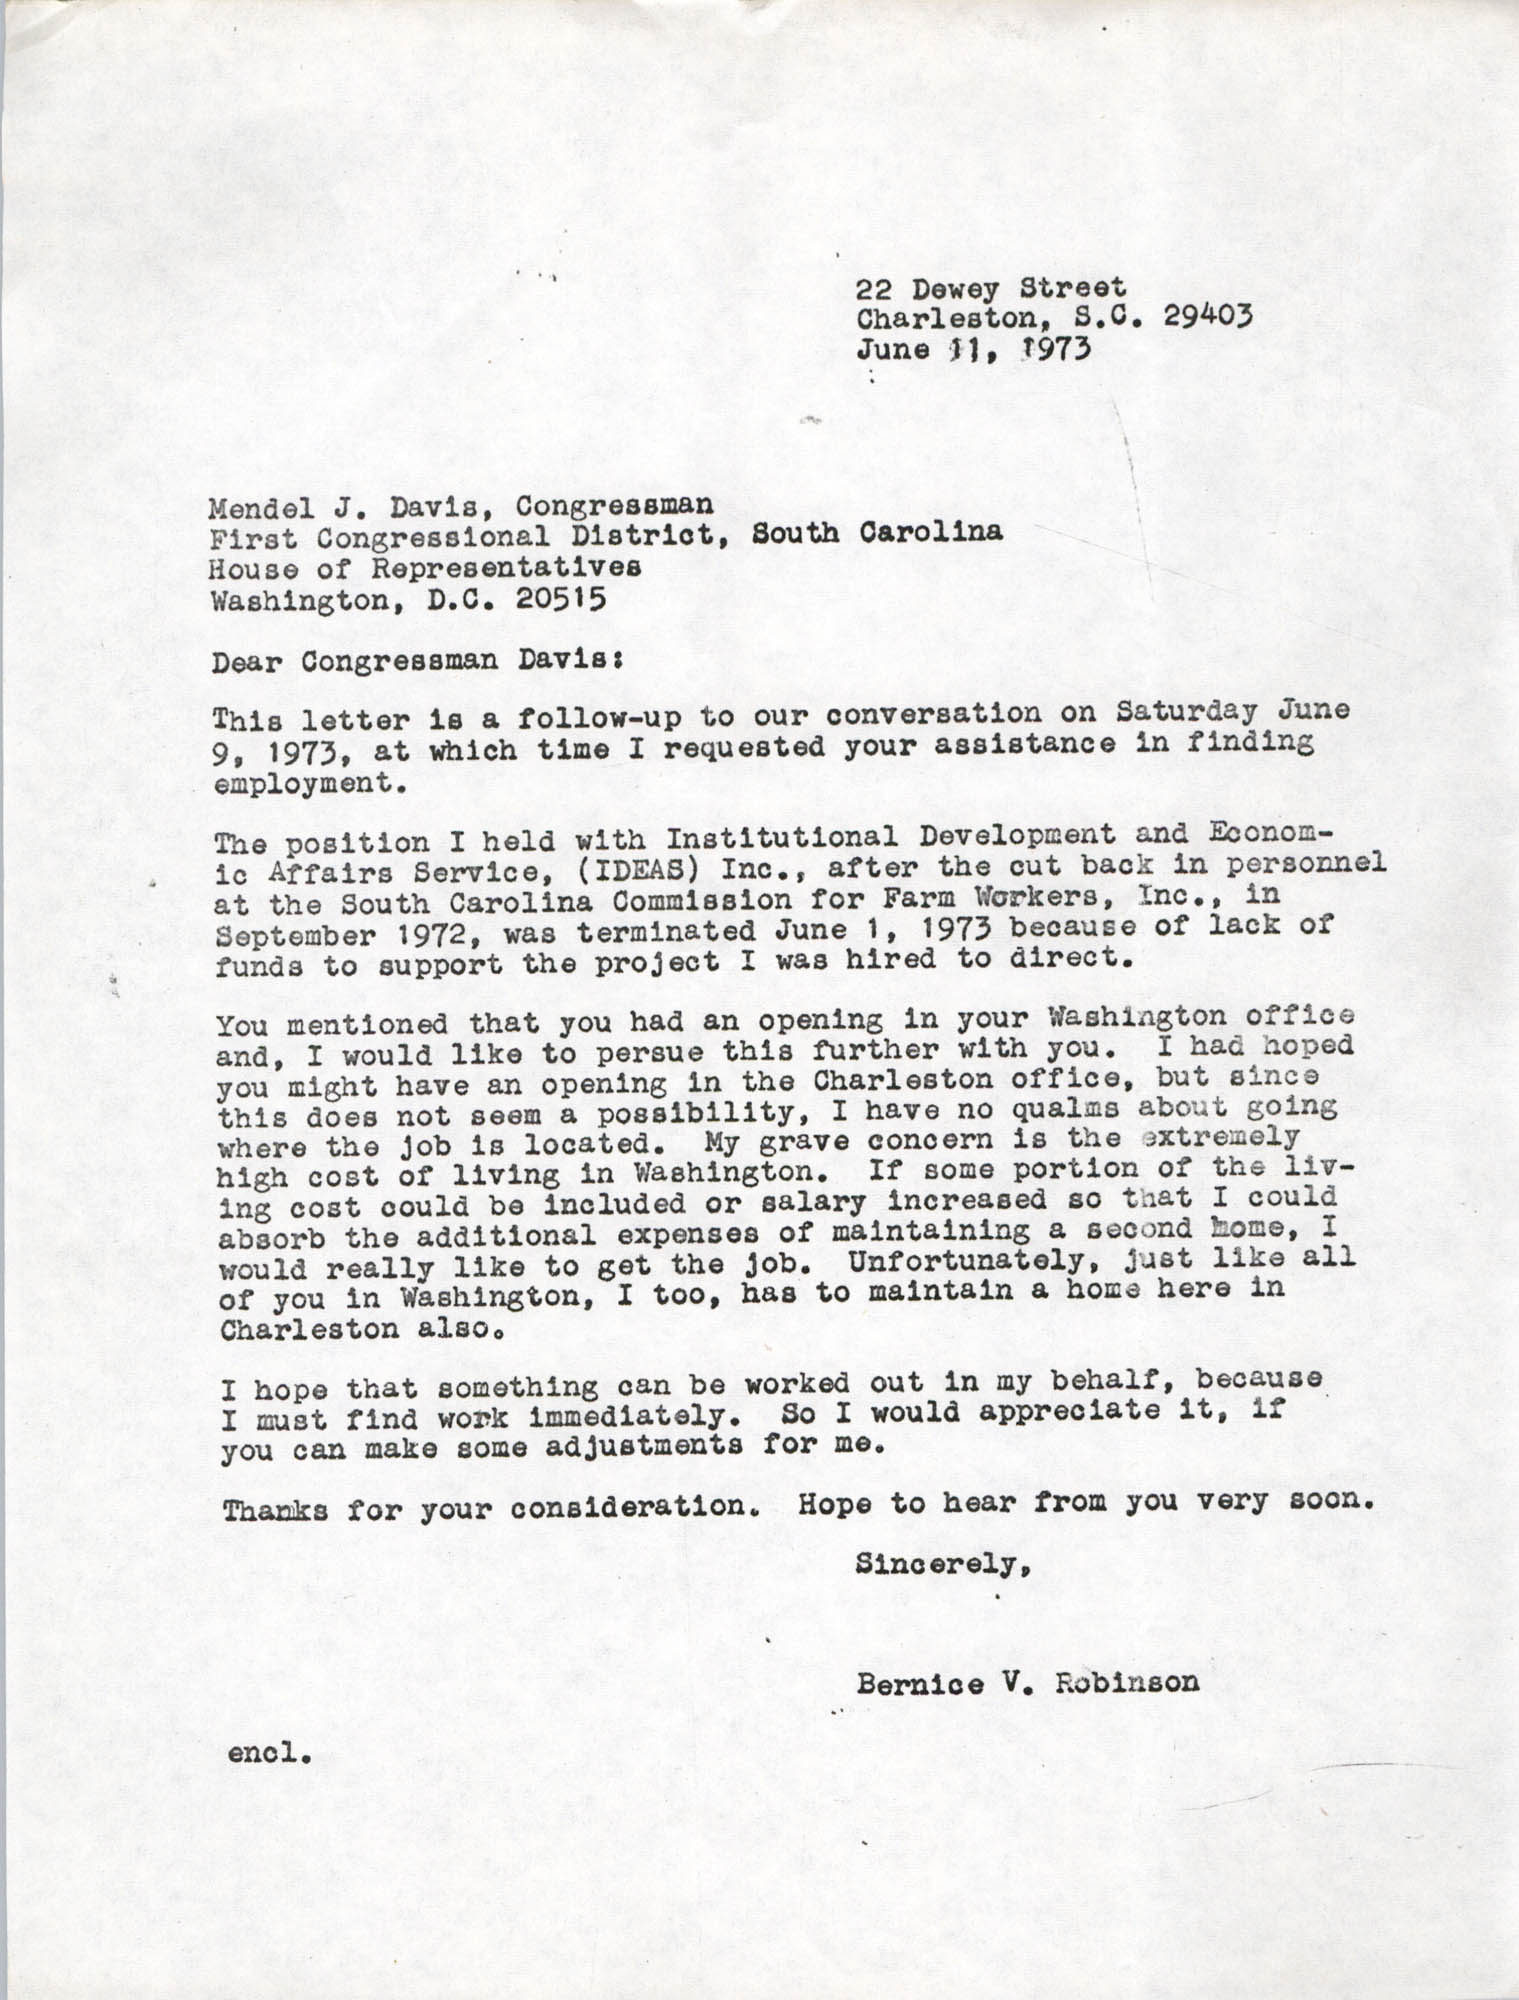 Letter from Bernice Robinson to Mendel Davis, June 11, 1973